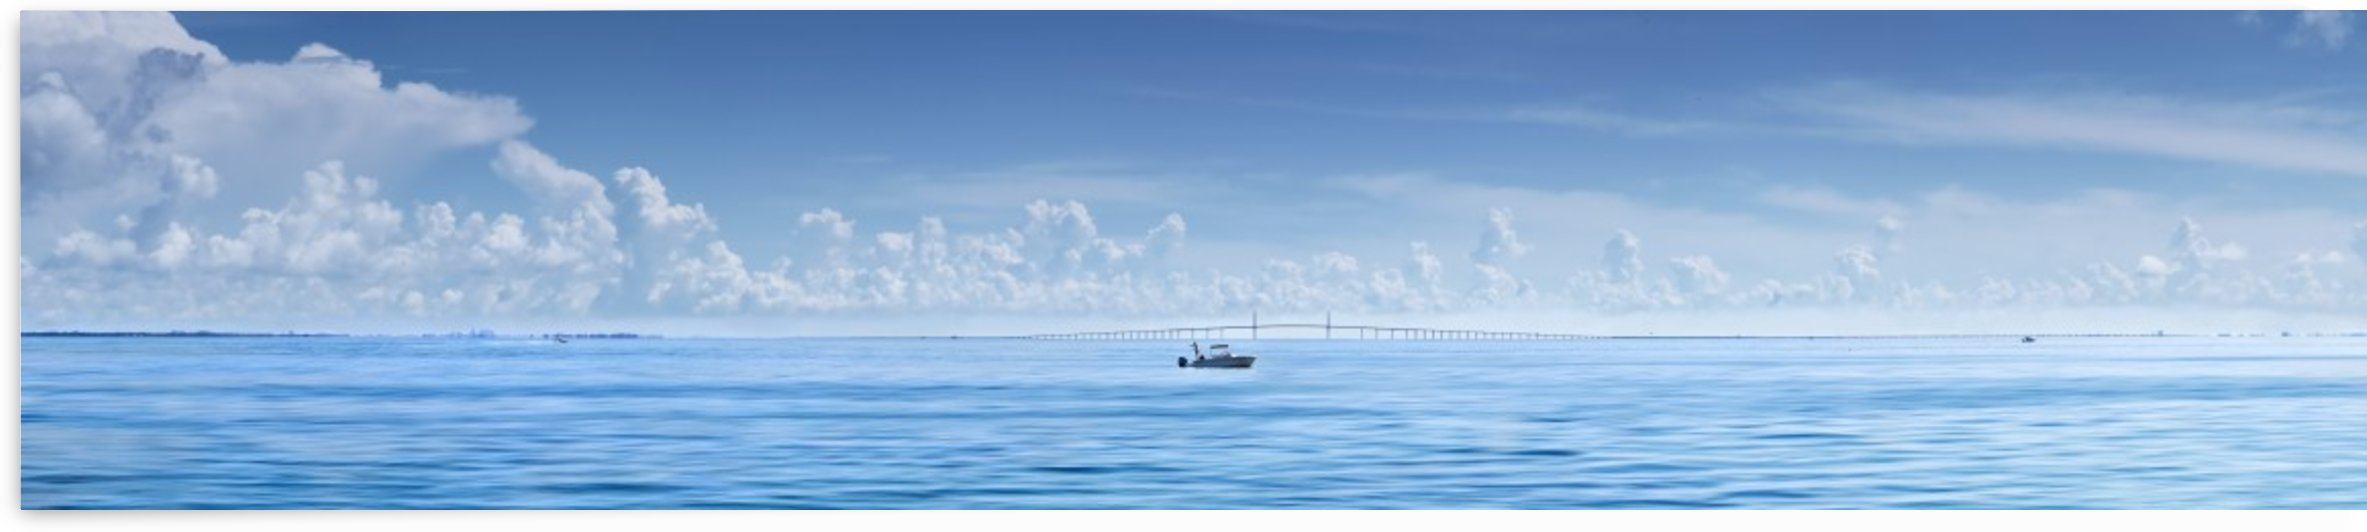 Fishing boat in front of Sunshine Skyway by Adrian Brockwell